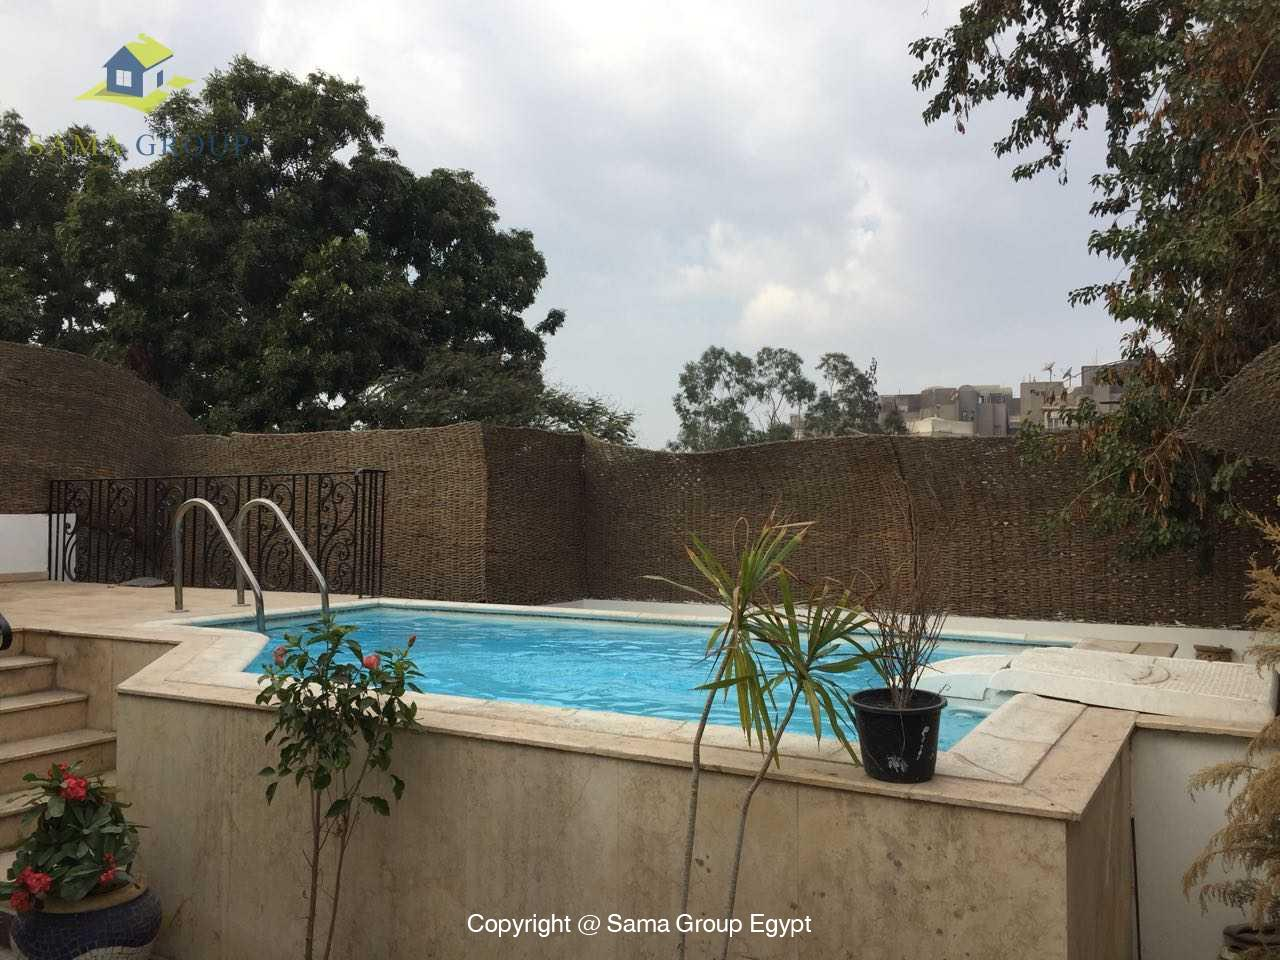 Penthouse Duplex For Rent In Maadi,Semi furnished,Penthouse Duplex NO #6